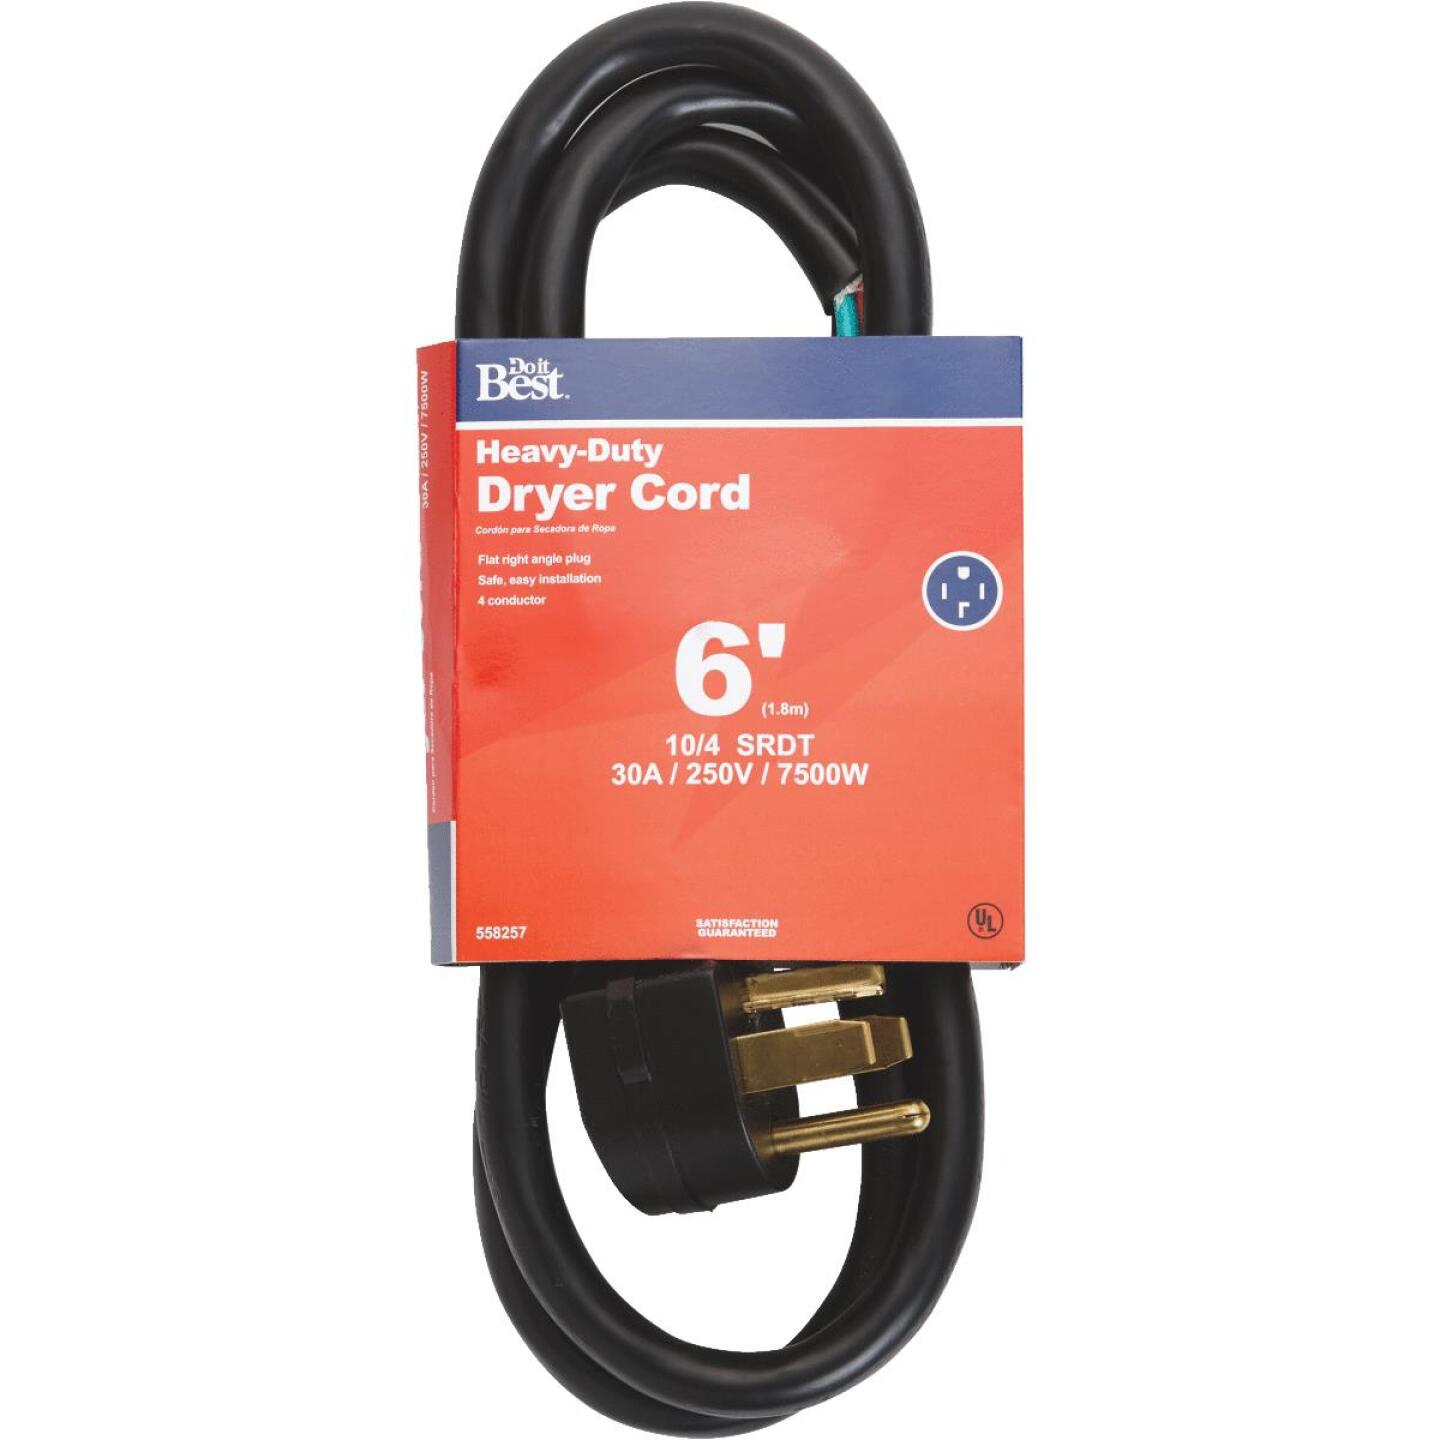 Do it Best 6 Ft. 10/4 30A Dryer Cord Image 1